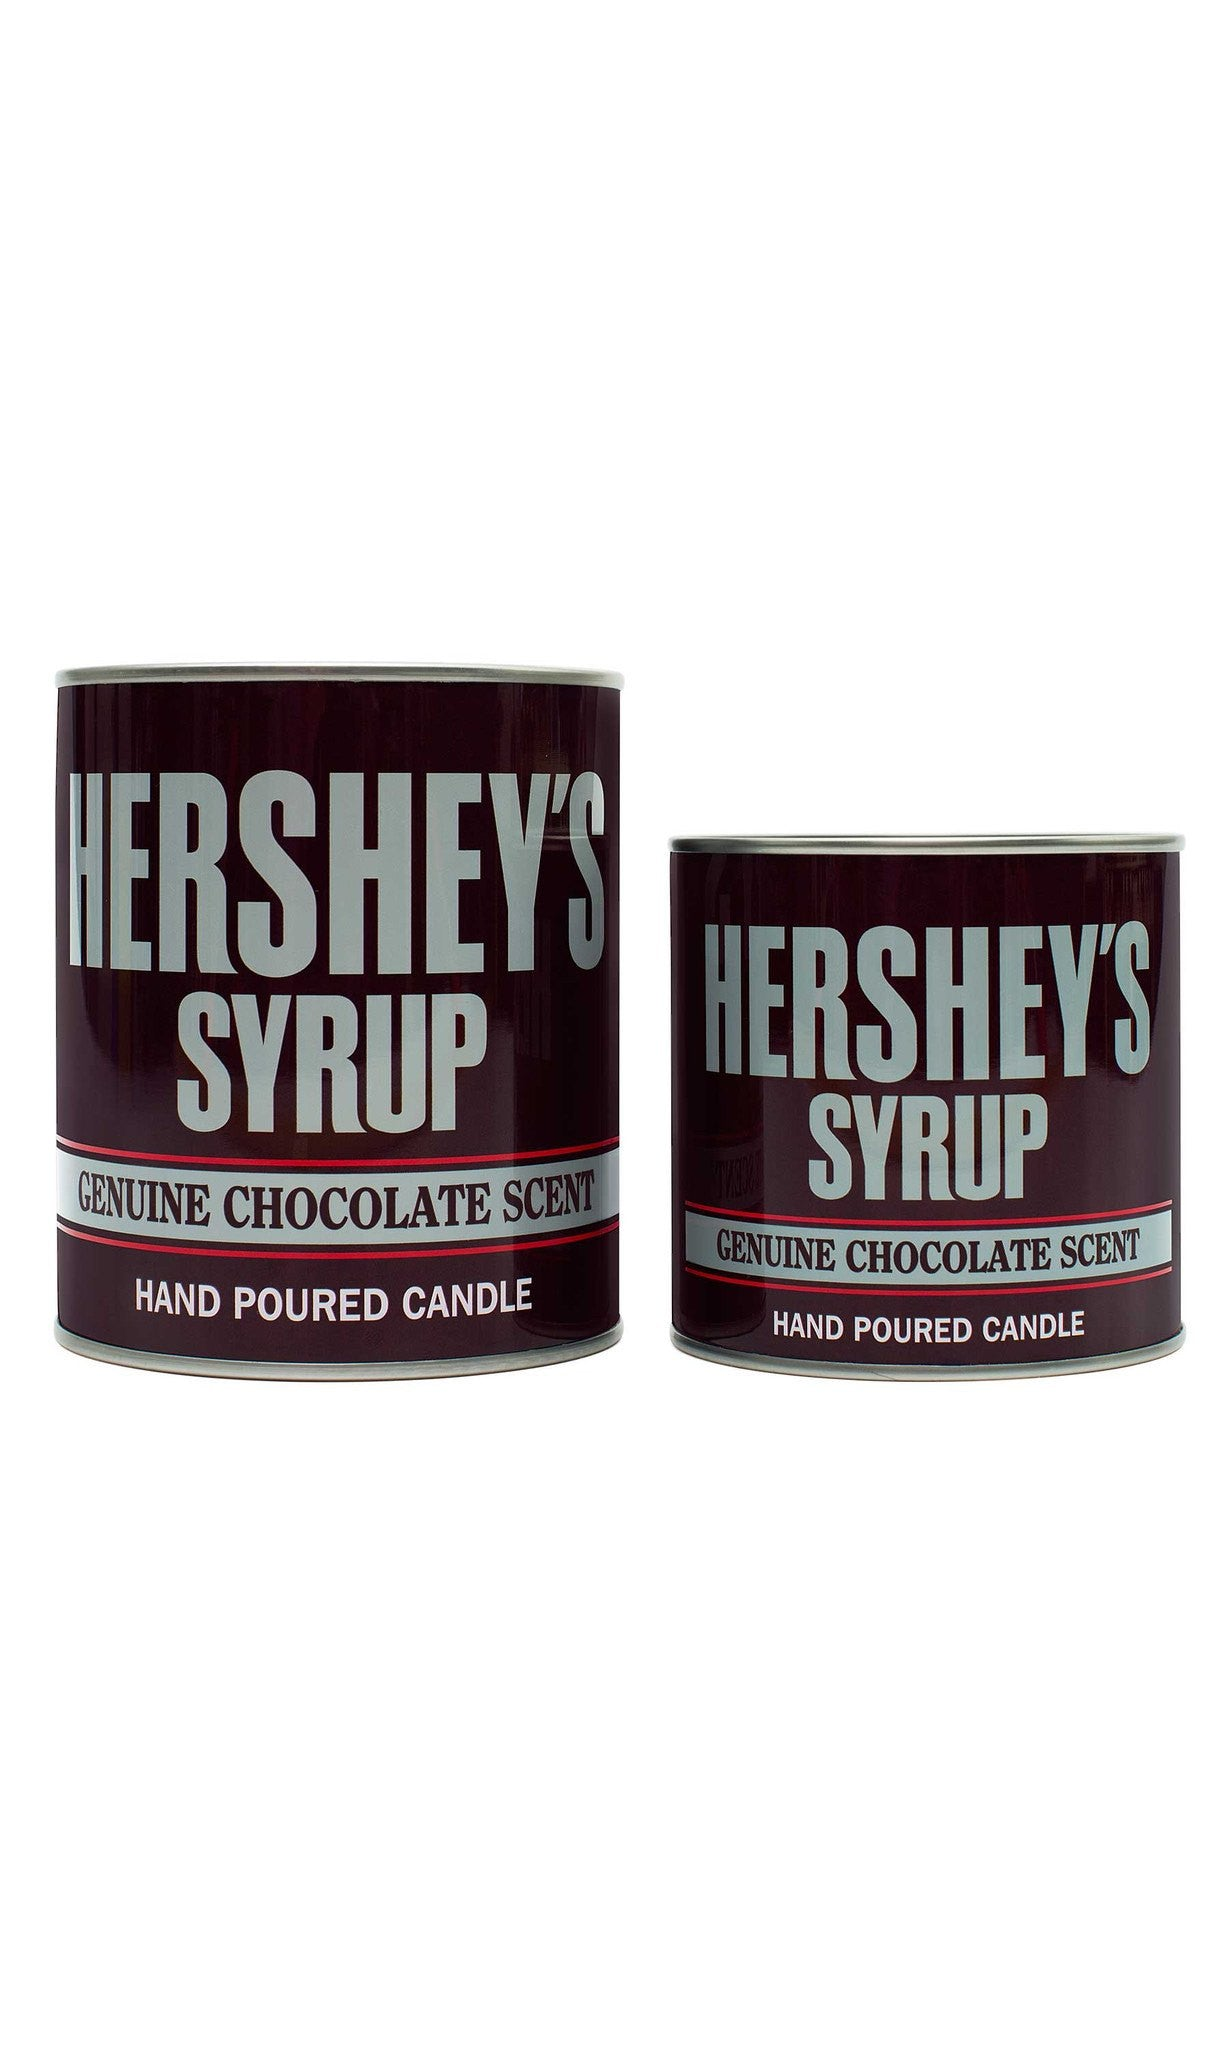 HERSHEY'S Chocolate Syrup Small Collectible Tin Candle - Candlemart.com - 3